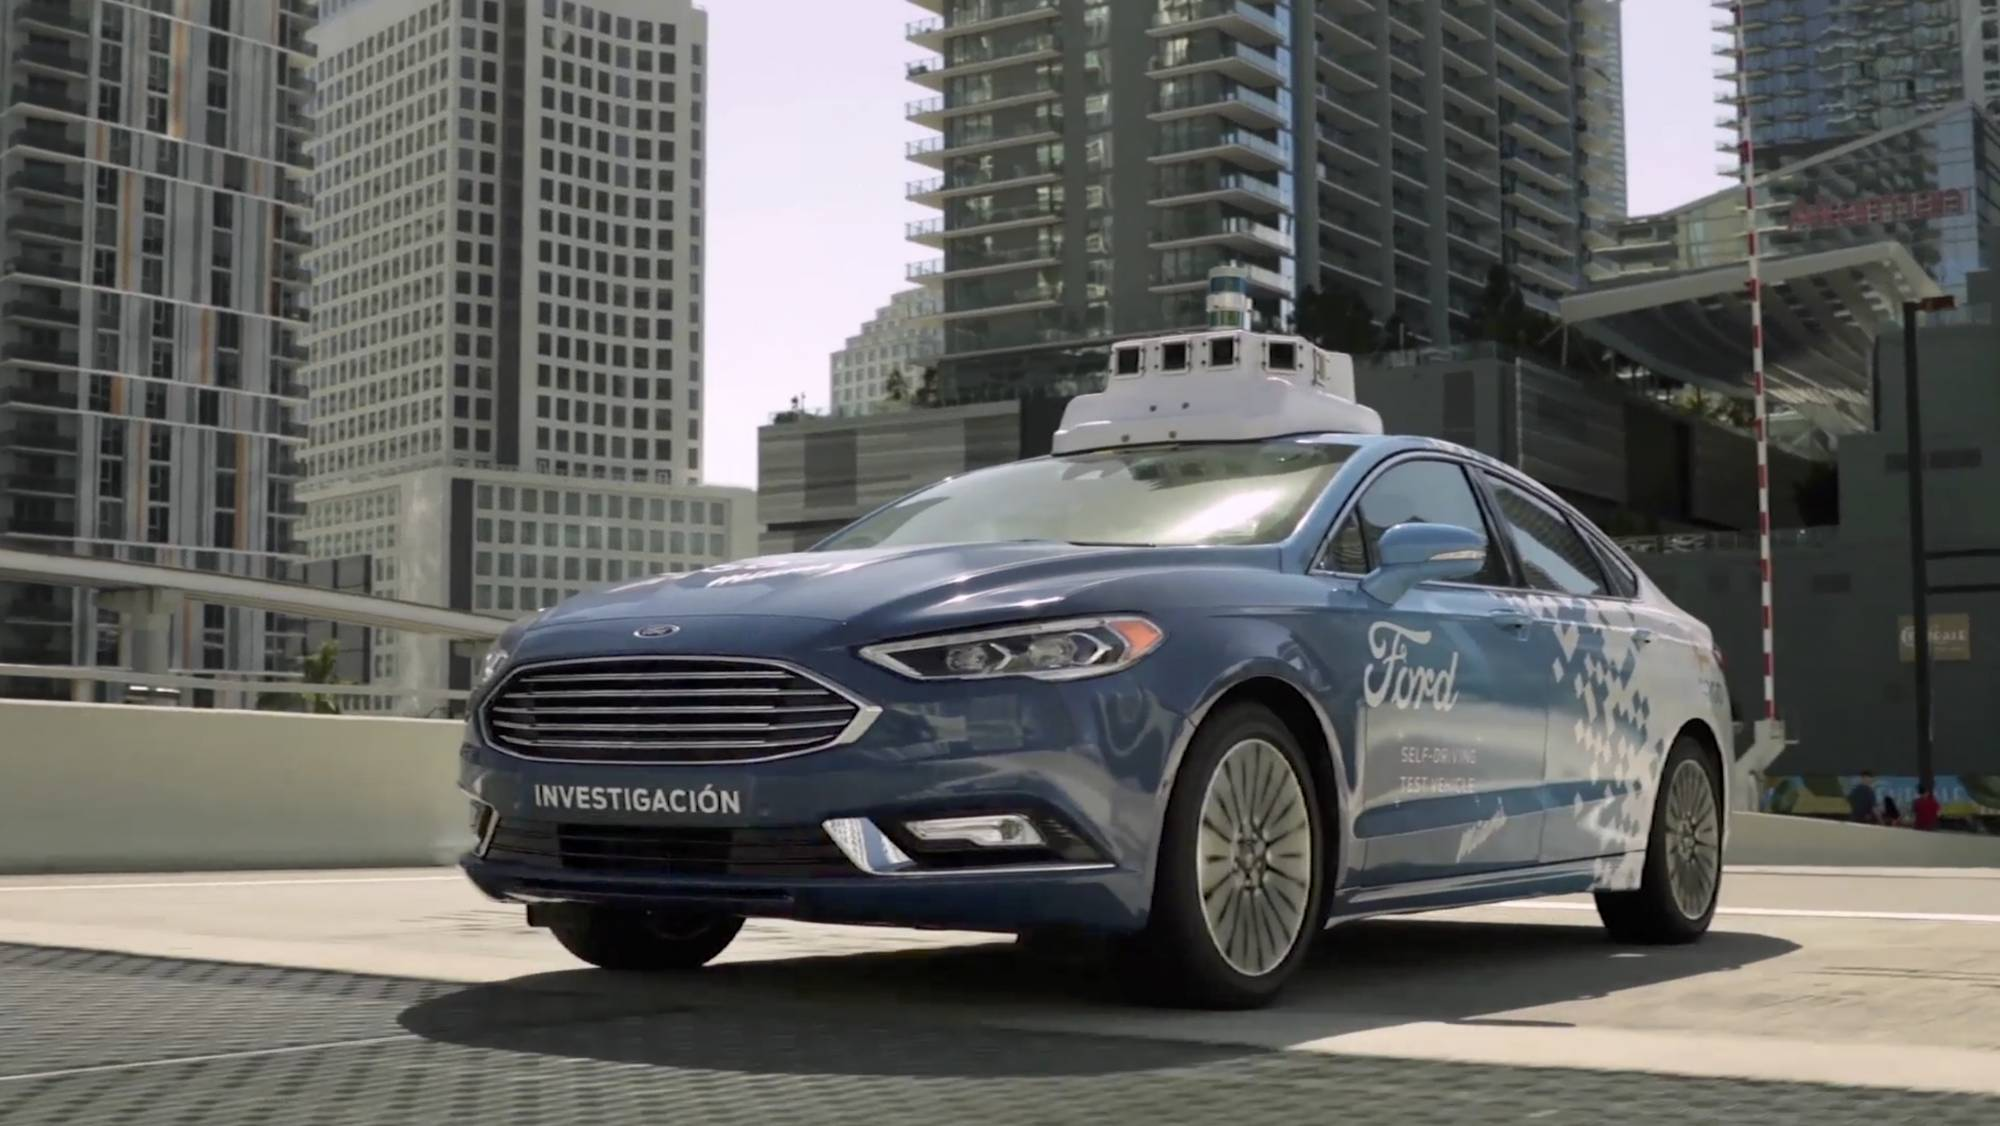 Ford and miami to form test bed for self driving cars wtop for Ford motor company news headlines